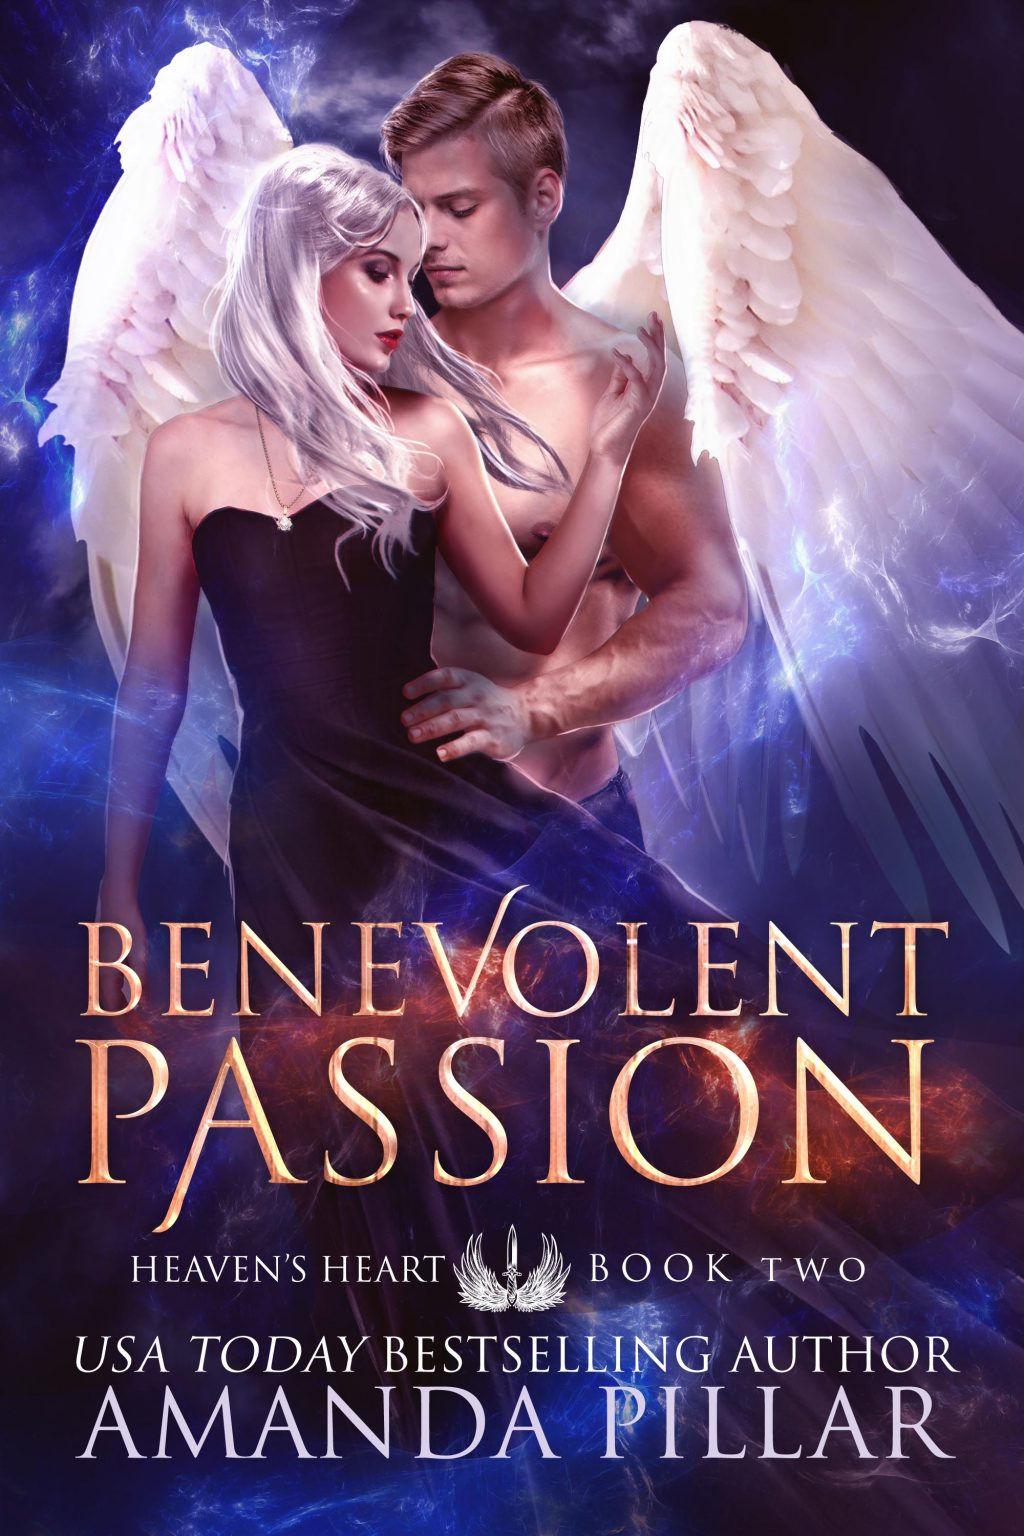 Benevolent Passion (Heaven's Heart Series #2) by Amanda Pillar